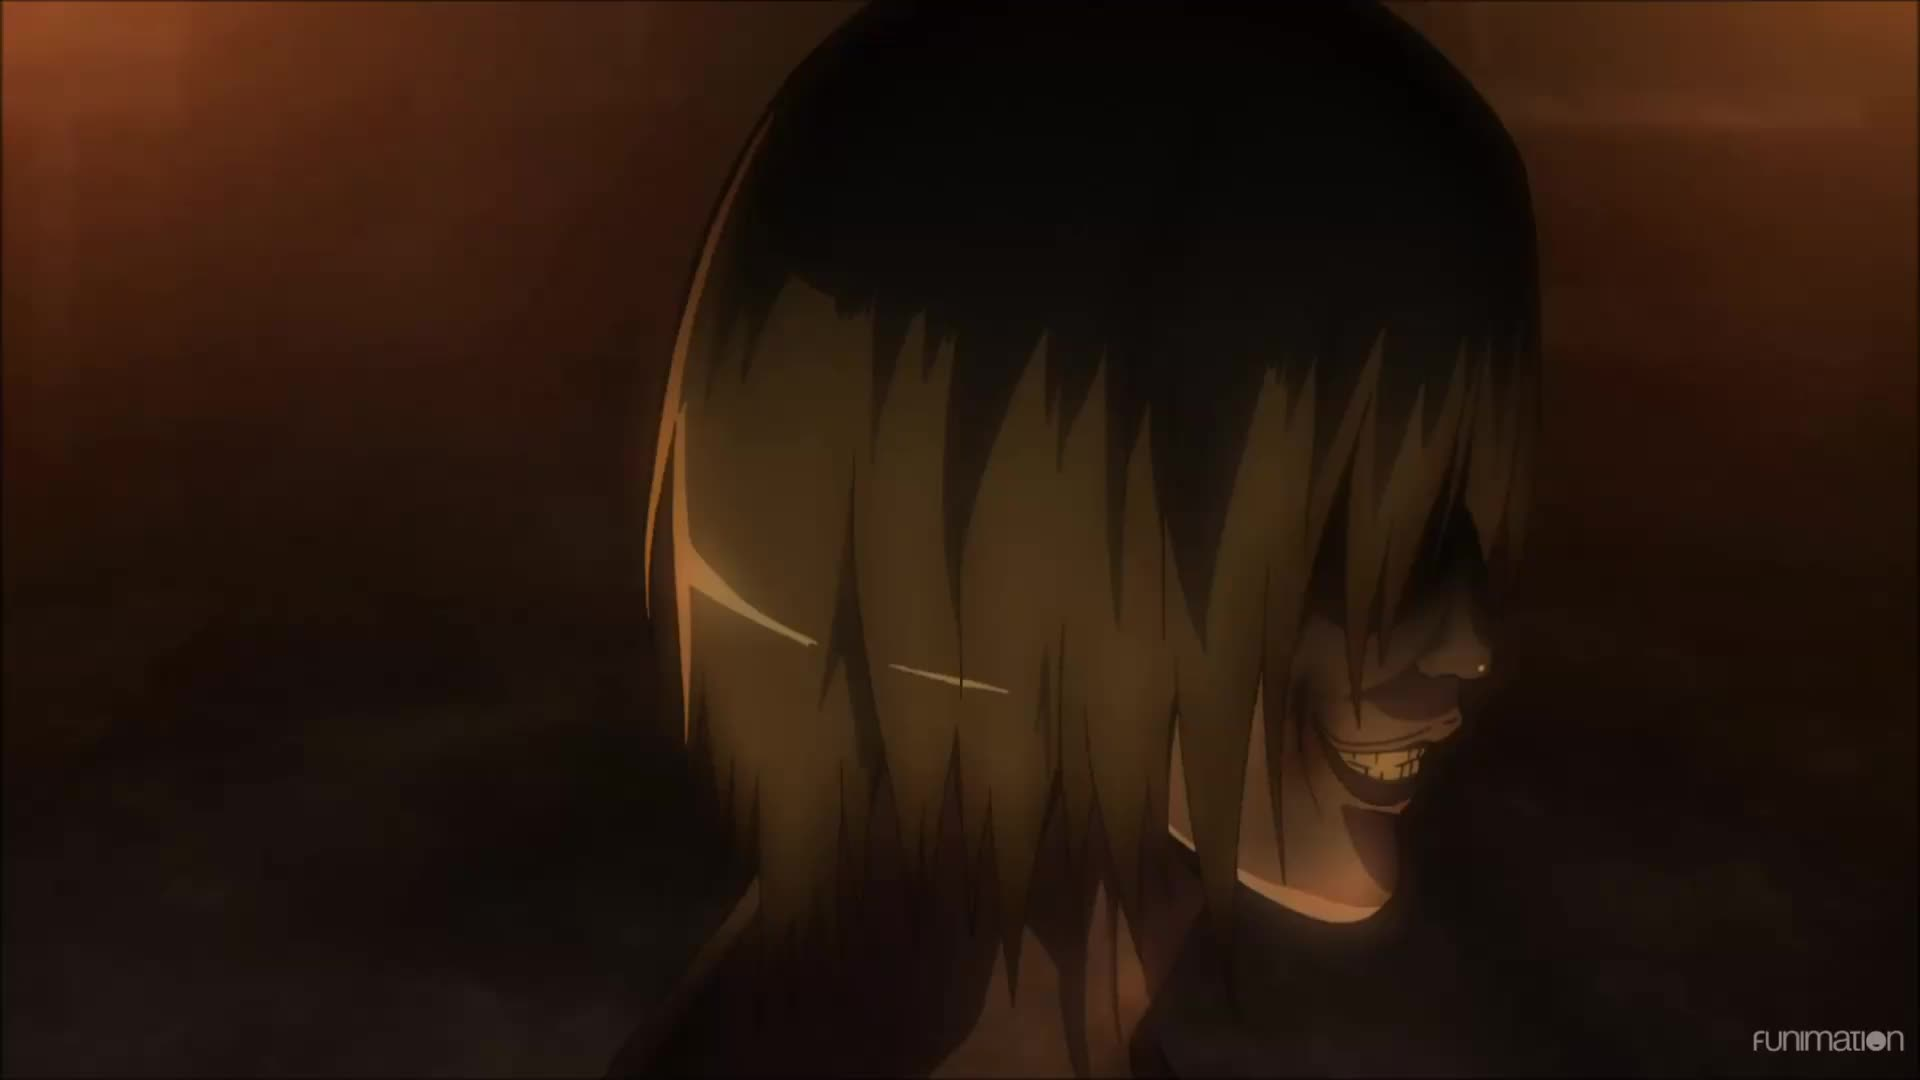 anime, attack on titan, attack on titan episode 8, attackontitan, attackontitanepisode8, dark fantasy, funimation, post apocalyptic, shingeki no kyojin, shinkgekinokyojin, shounen, shounen anime, steampunk, A face only a mother could love. Attack on Titan Ep 8 GIFs